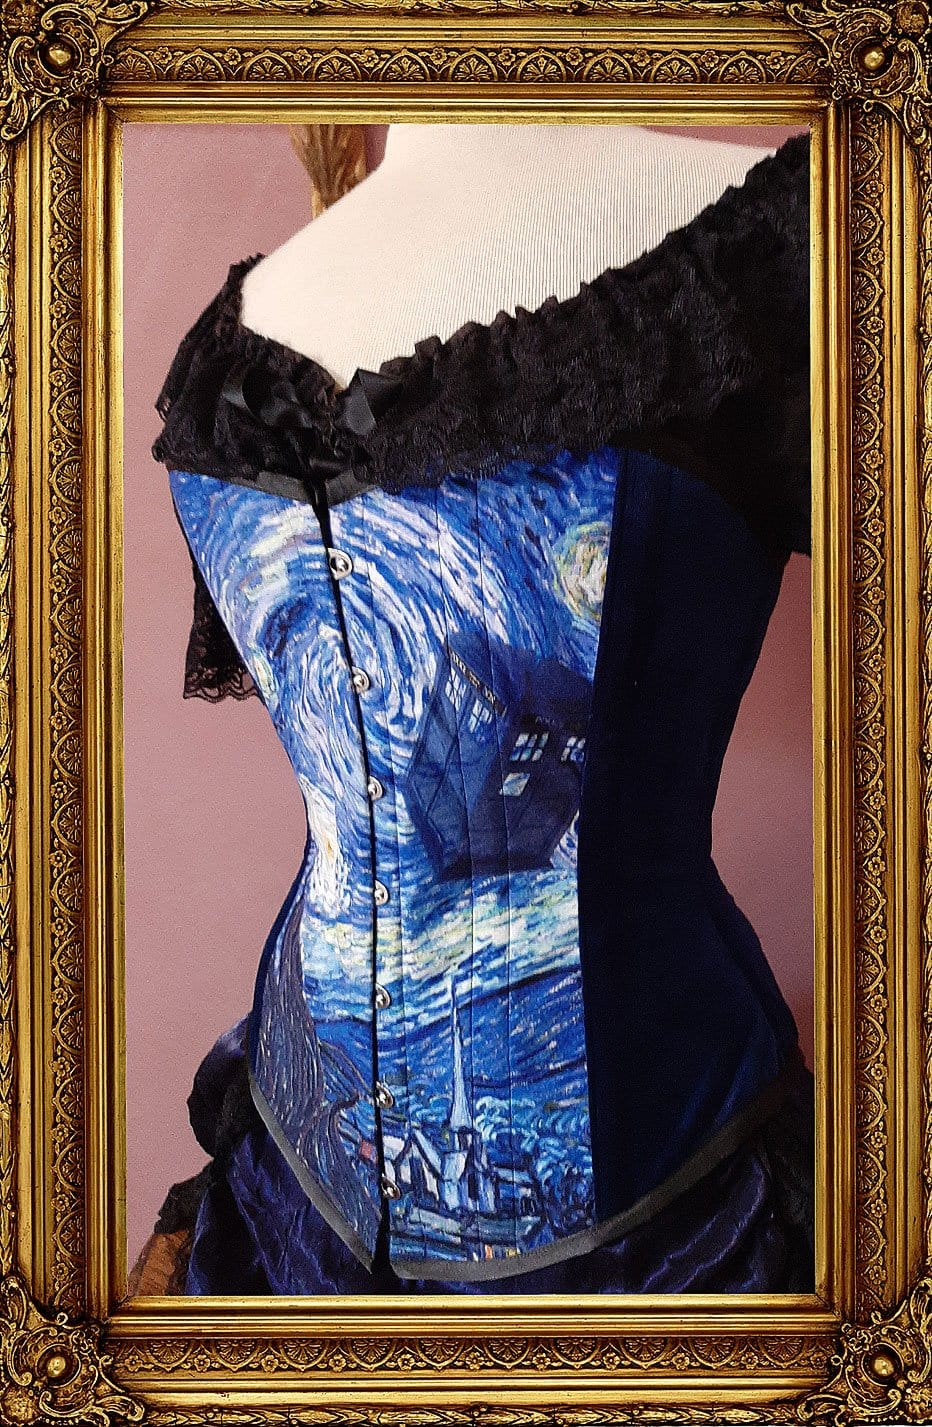 Tardis and Starry Night Van Gogh over bust corset made in Australia Gallery Serpentine Corsetry